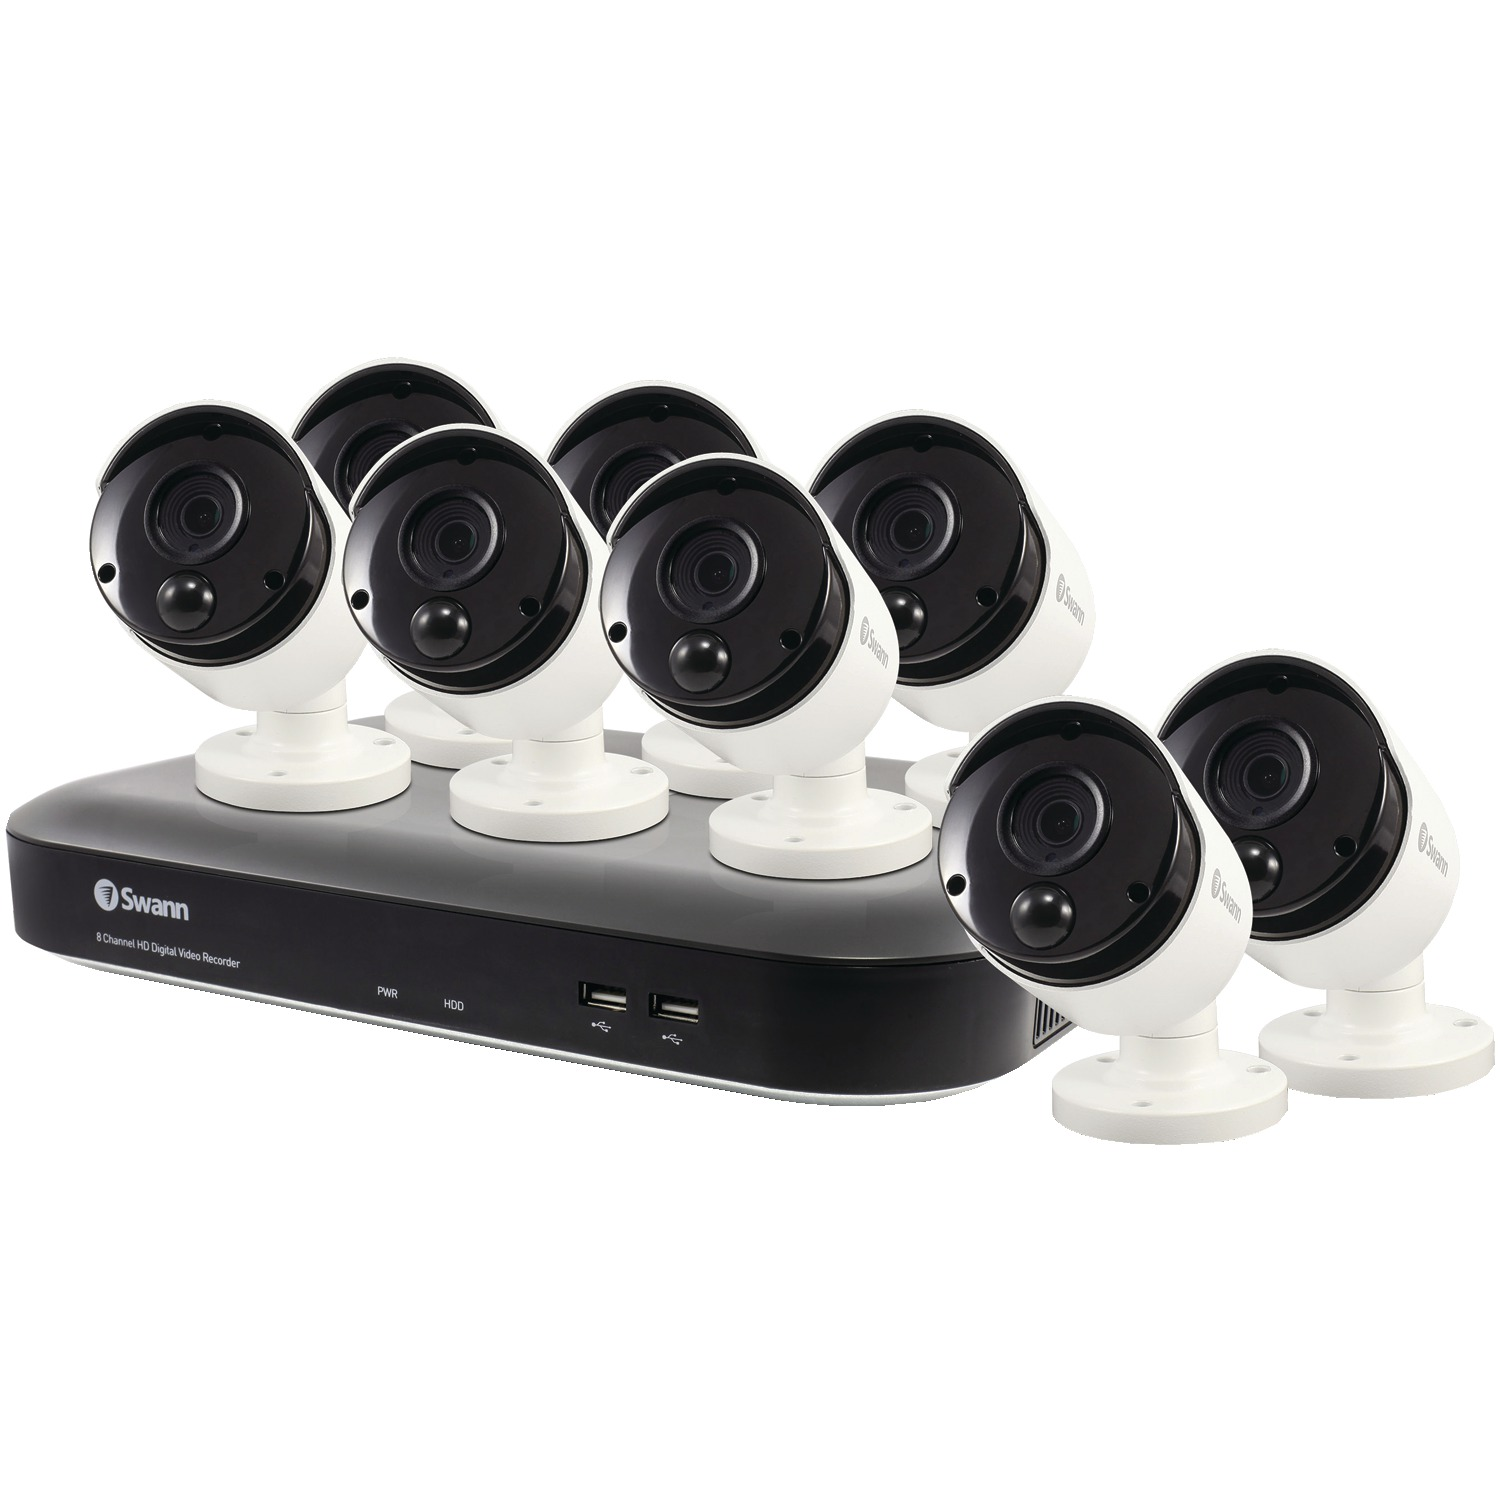 Swann SWDVK-849808-US 8-Channel 4980 Series 5.0-Megapixel DVR With 2TB HD & 8 PIR Bullet Cameras